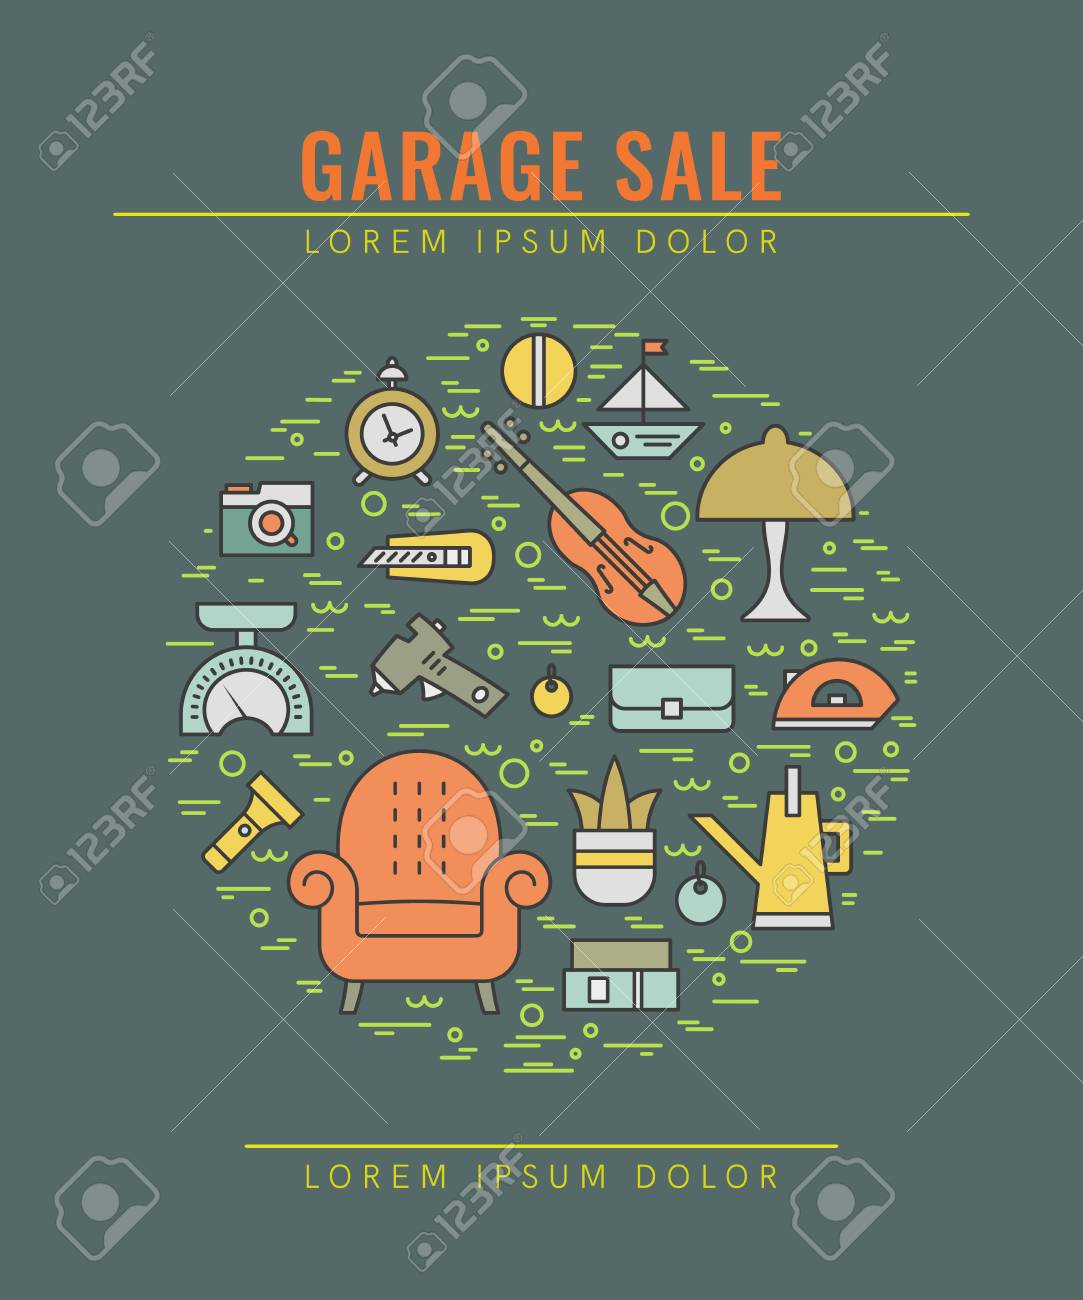 Garage Design Template Vector Line Style Illustration Garage Sale Yard Sale Flyer